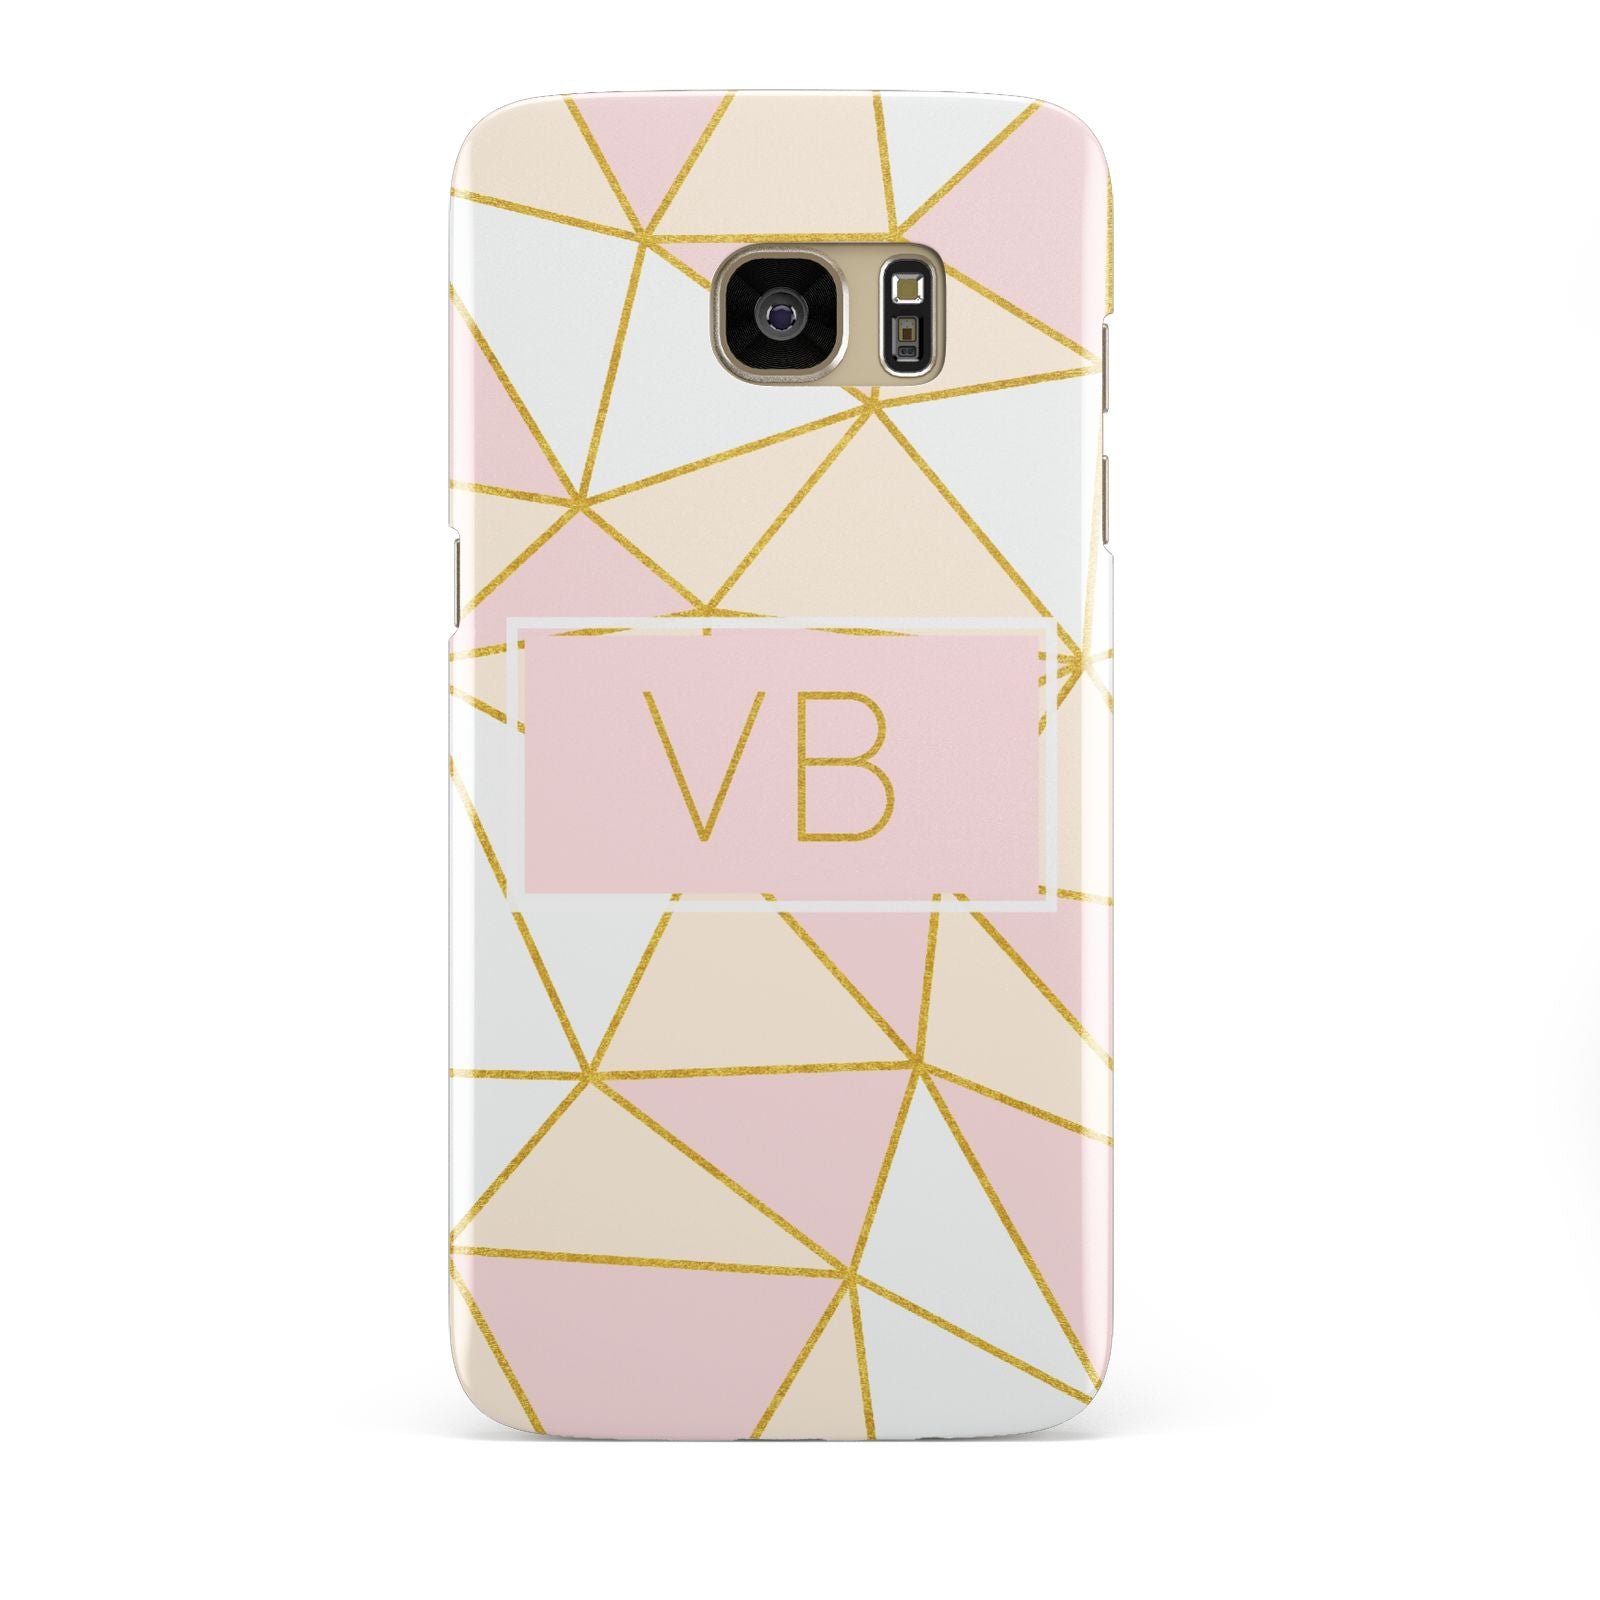 Personalised Gold Initials Geometric Samsung Galaxy S7 Edge Case